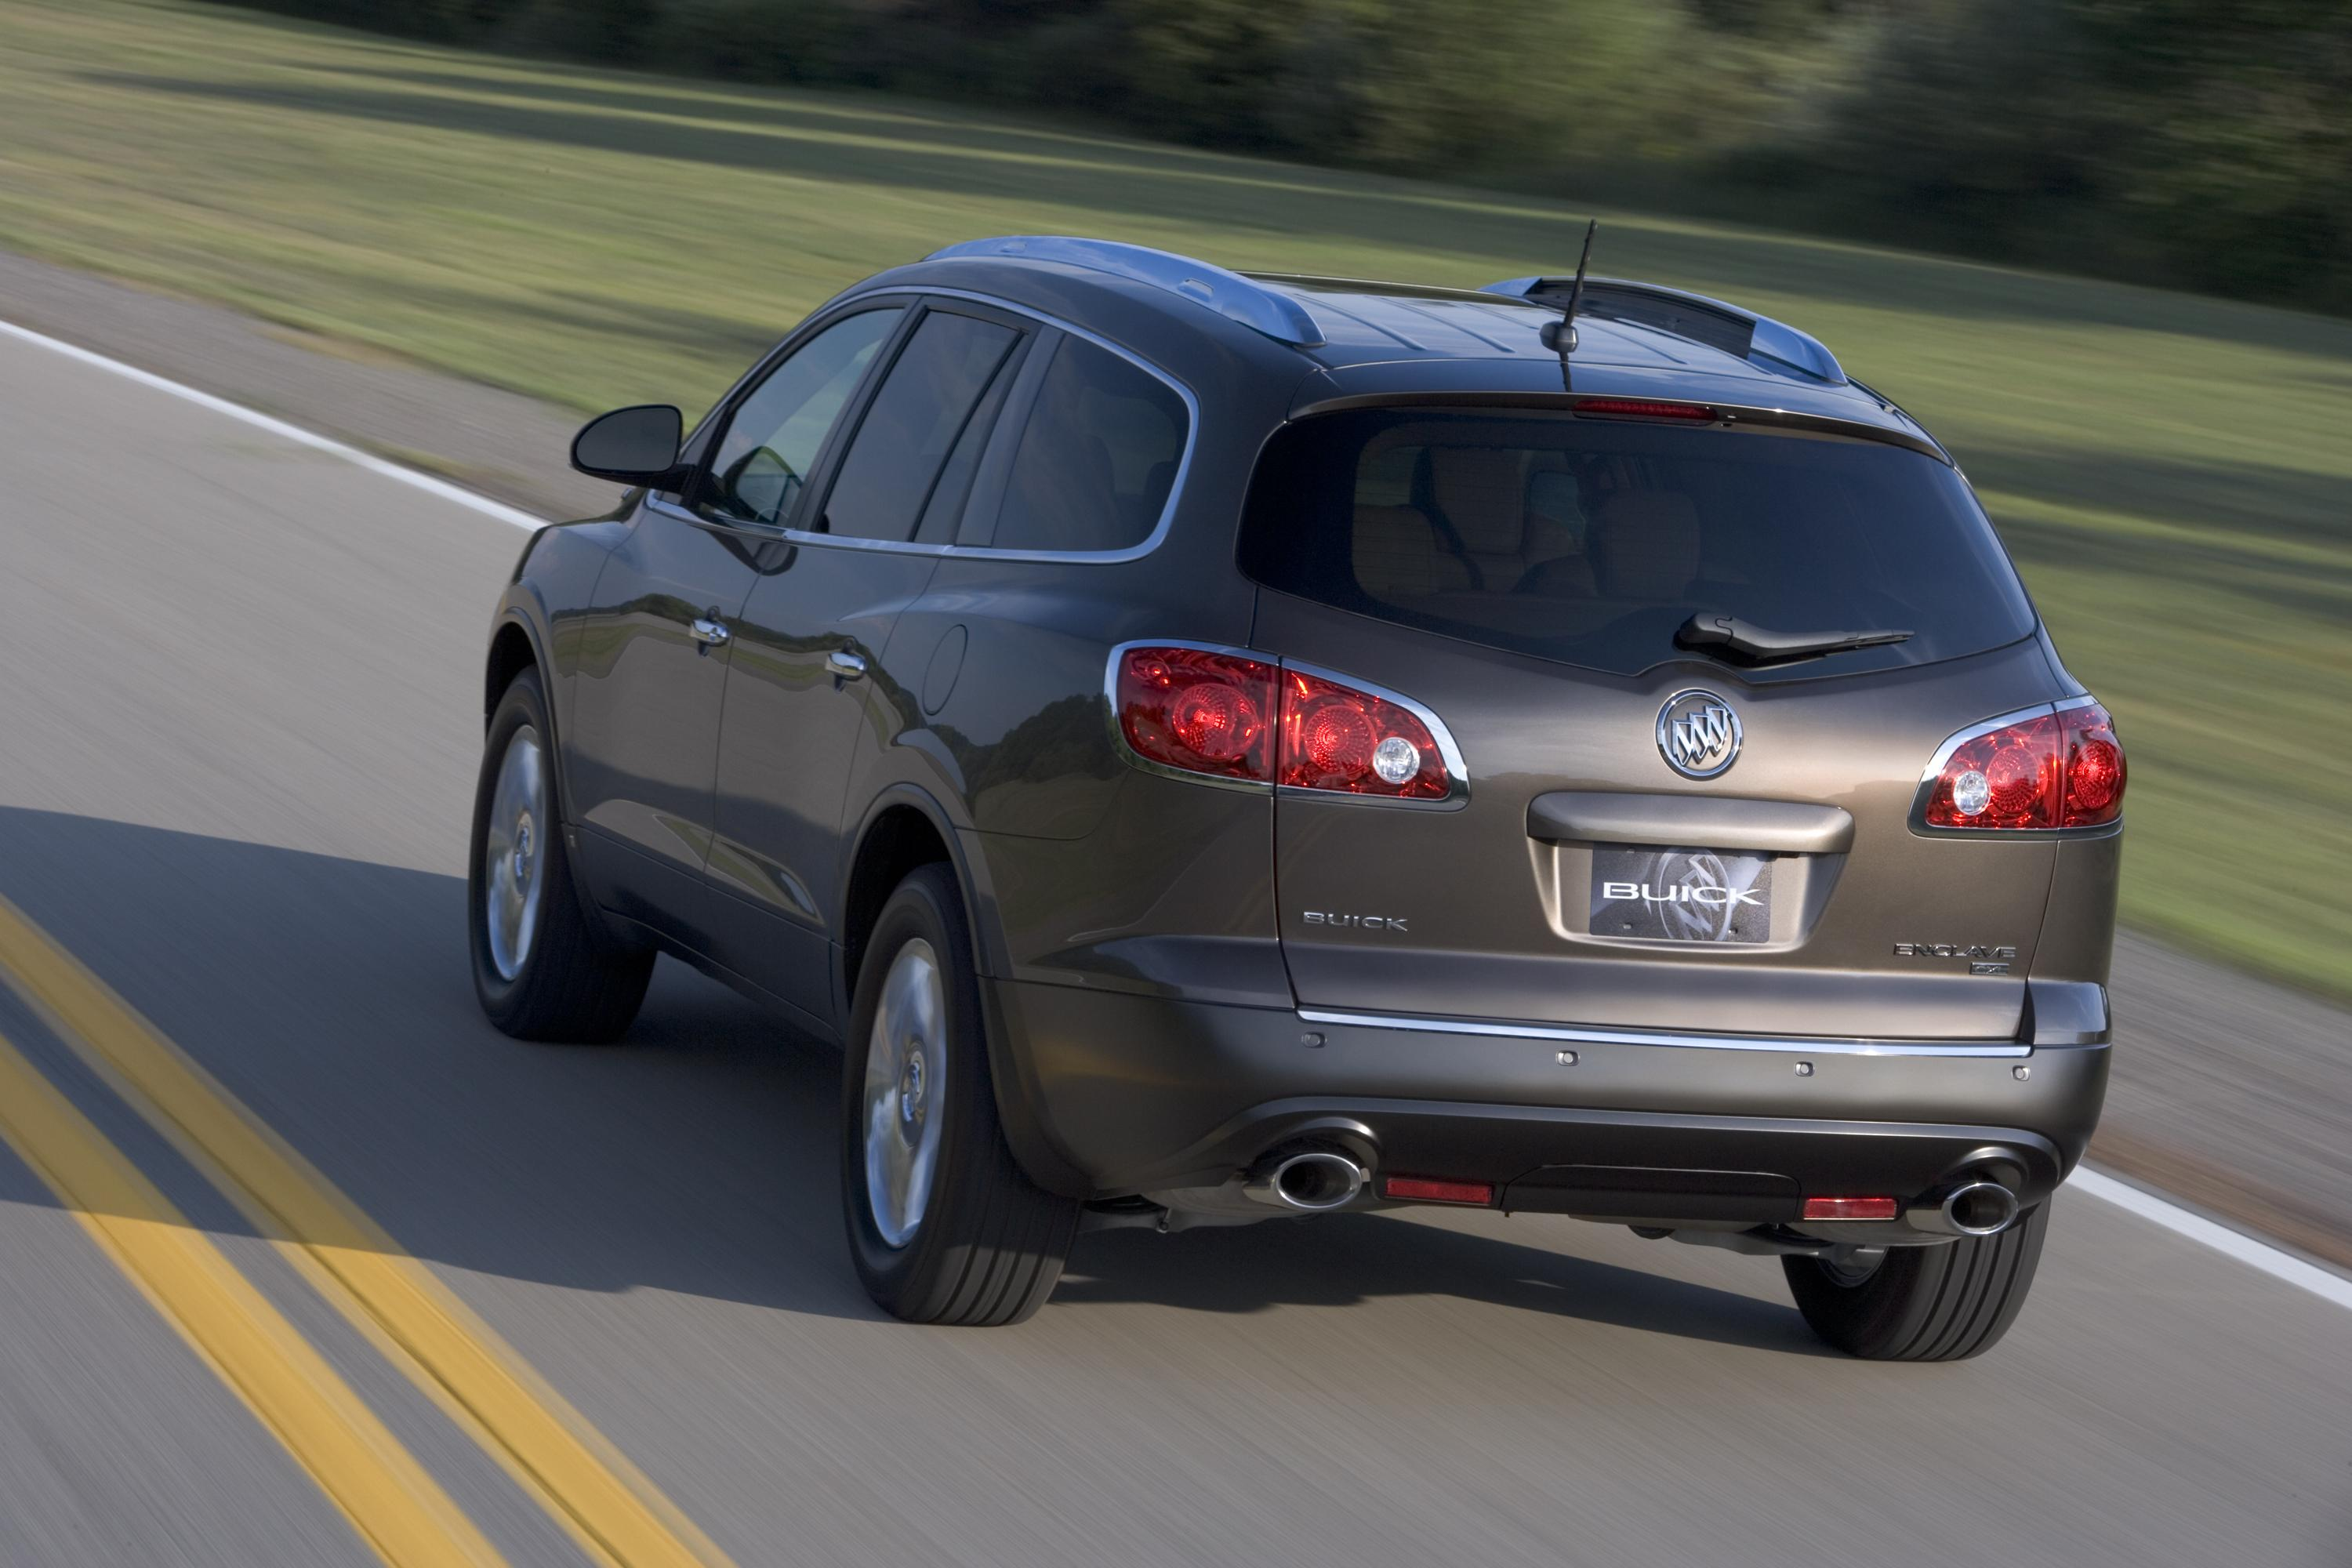 enclaves car the enclave from her kids charge and n moms review buick a momsncharge mom